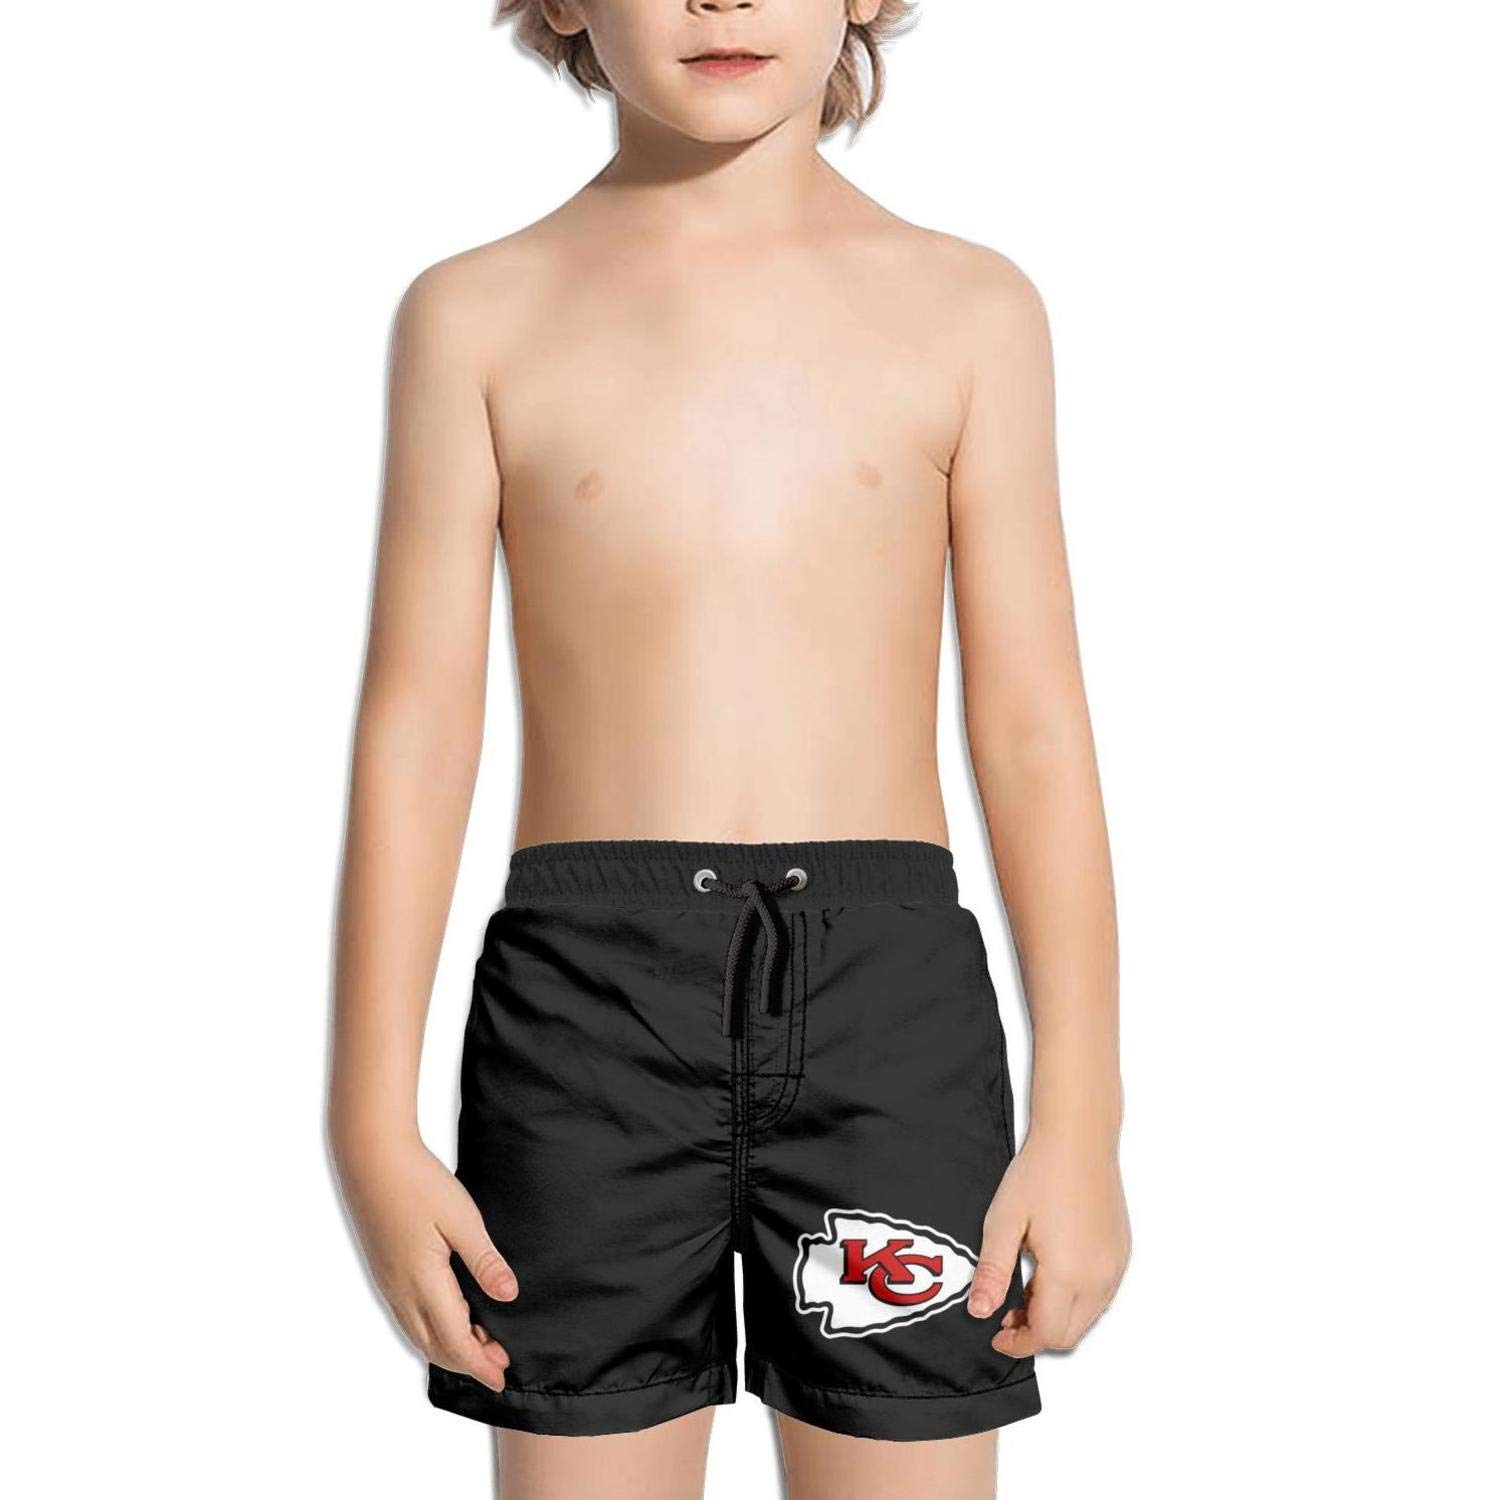 OPUYVFR Kids Boardshorts Quick Dry Bathing Suits Mesh Lining Beach Board Shorts